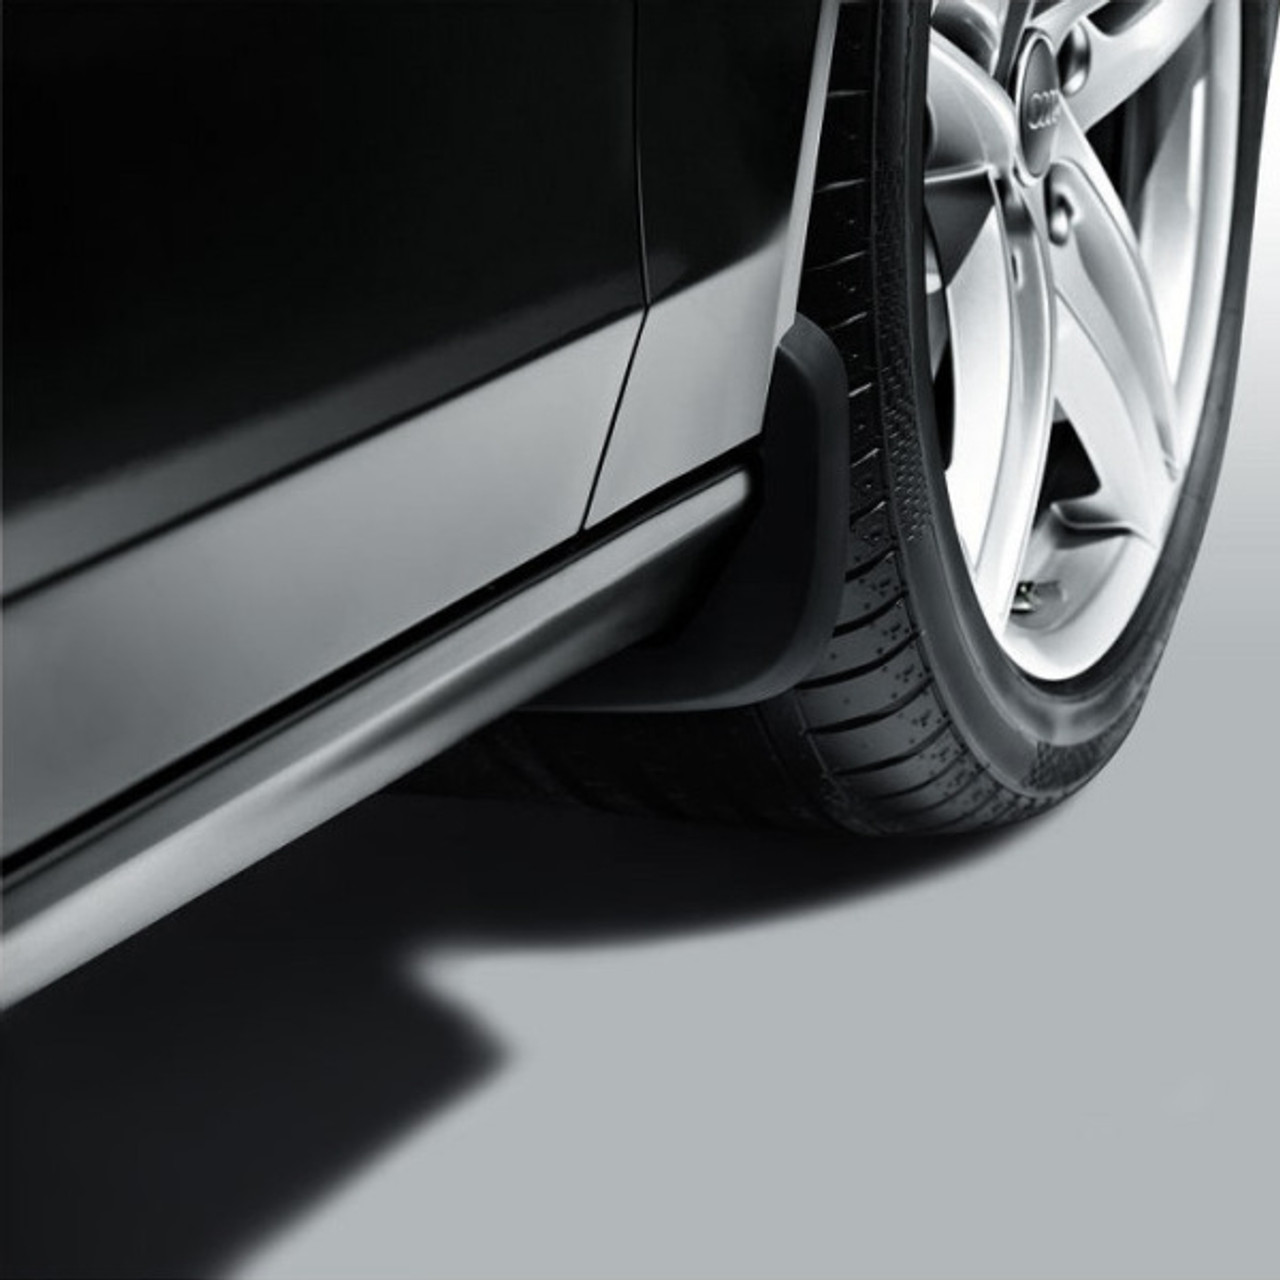 Audi A4 Front Mud Flaps (2012 Onwards)